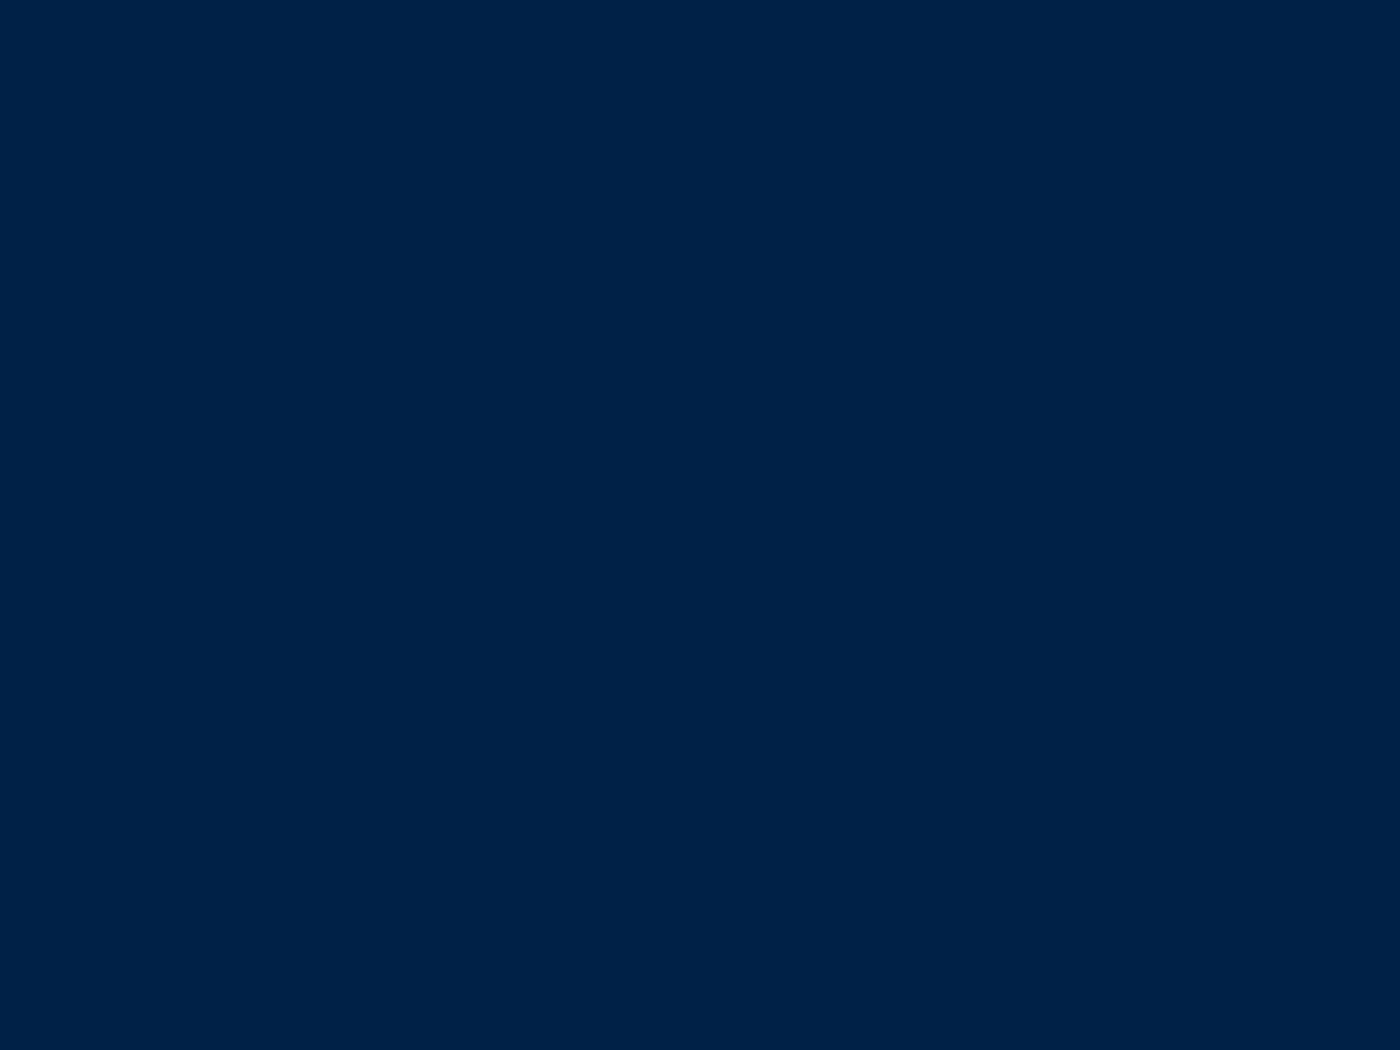 1400x1050 Oxford Blue Solid Color Background